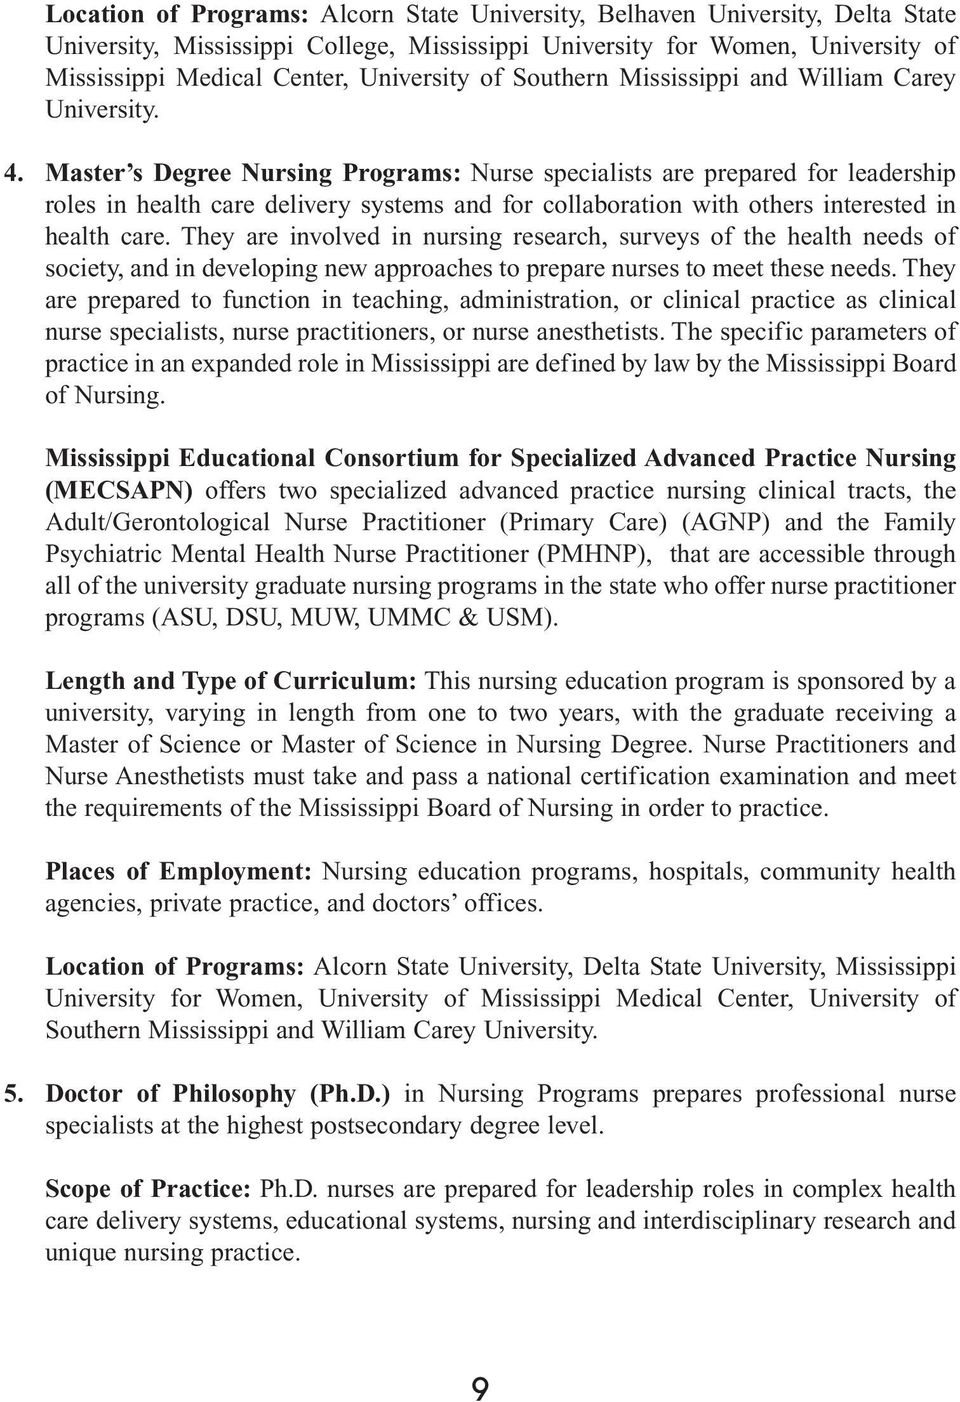 Master s Degree Nursing Programs: Nurse specialists are prepared for leadership roles in health care delivery systems and for collaboration with others interested in health care.